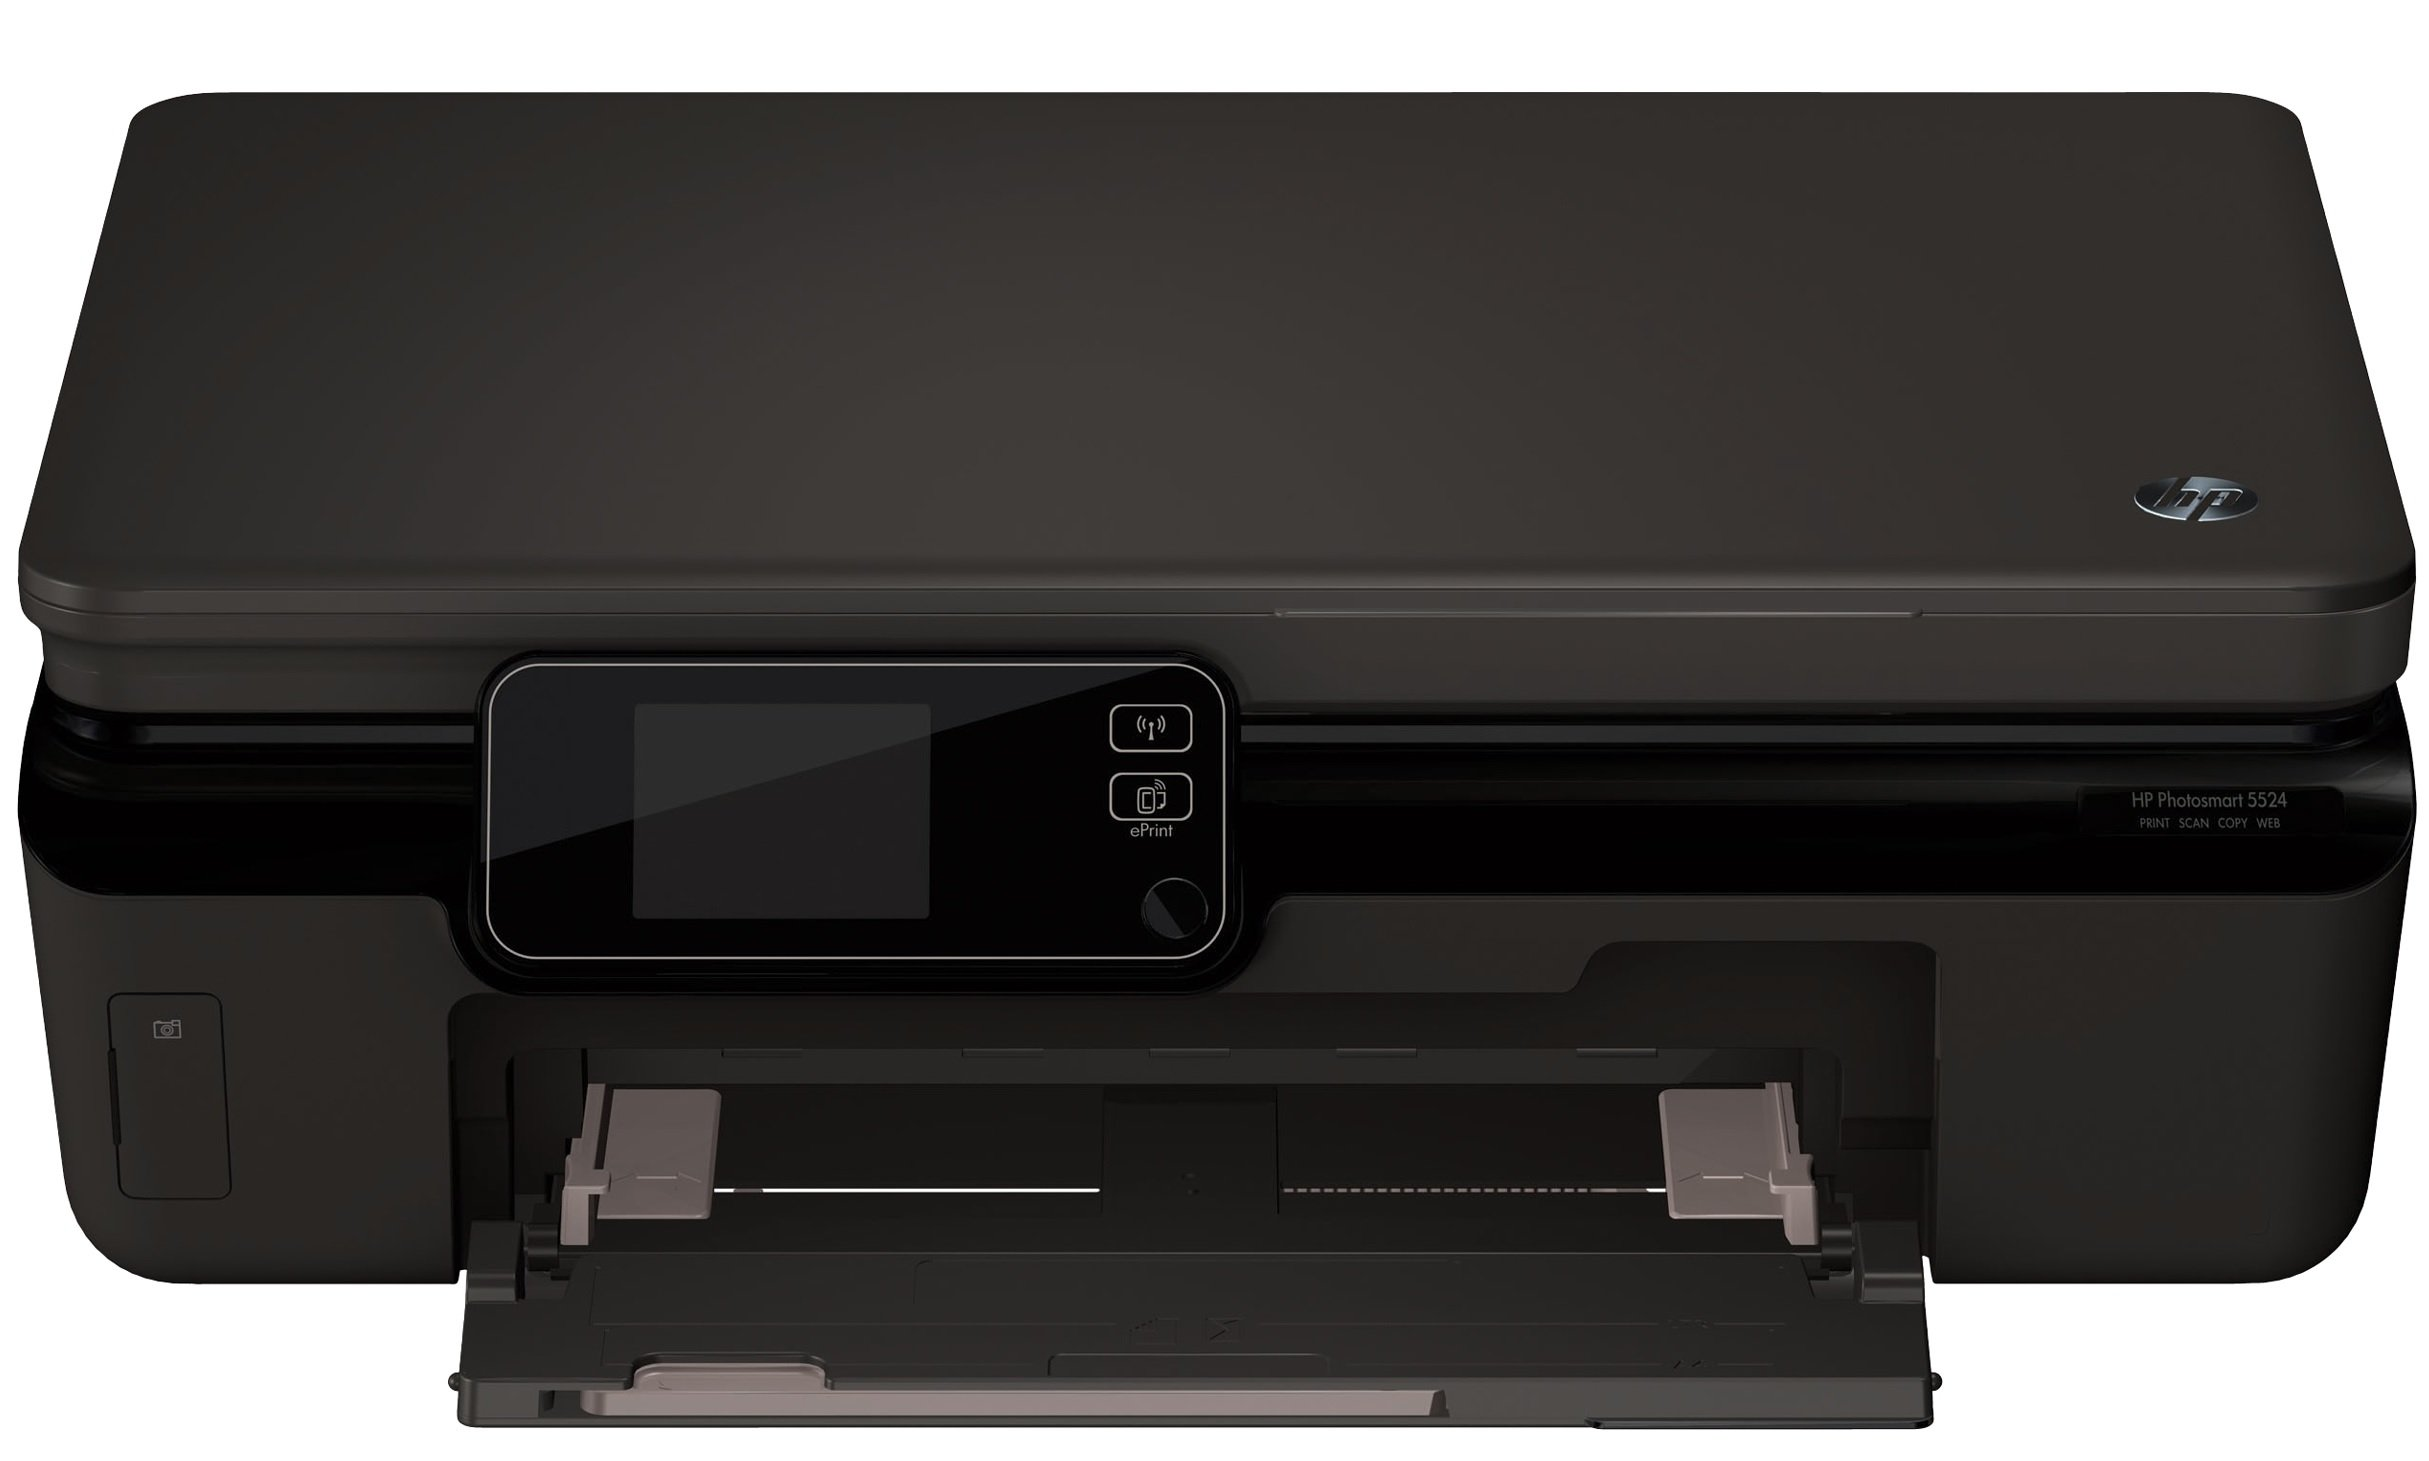 HP Photosmart 5524 Ink Cartridges